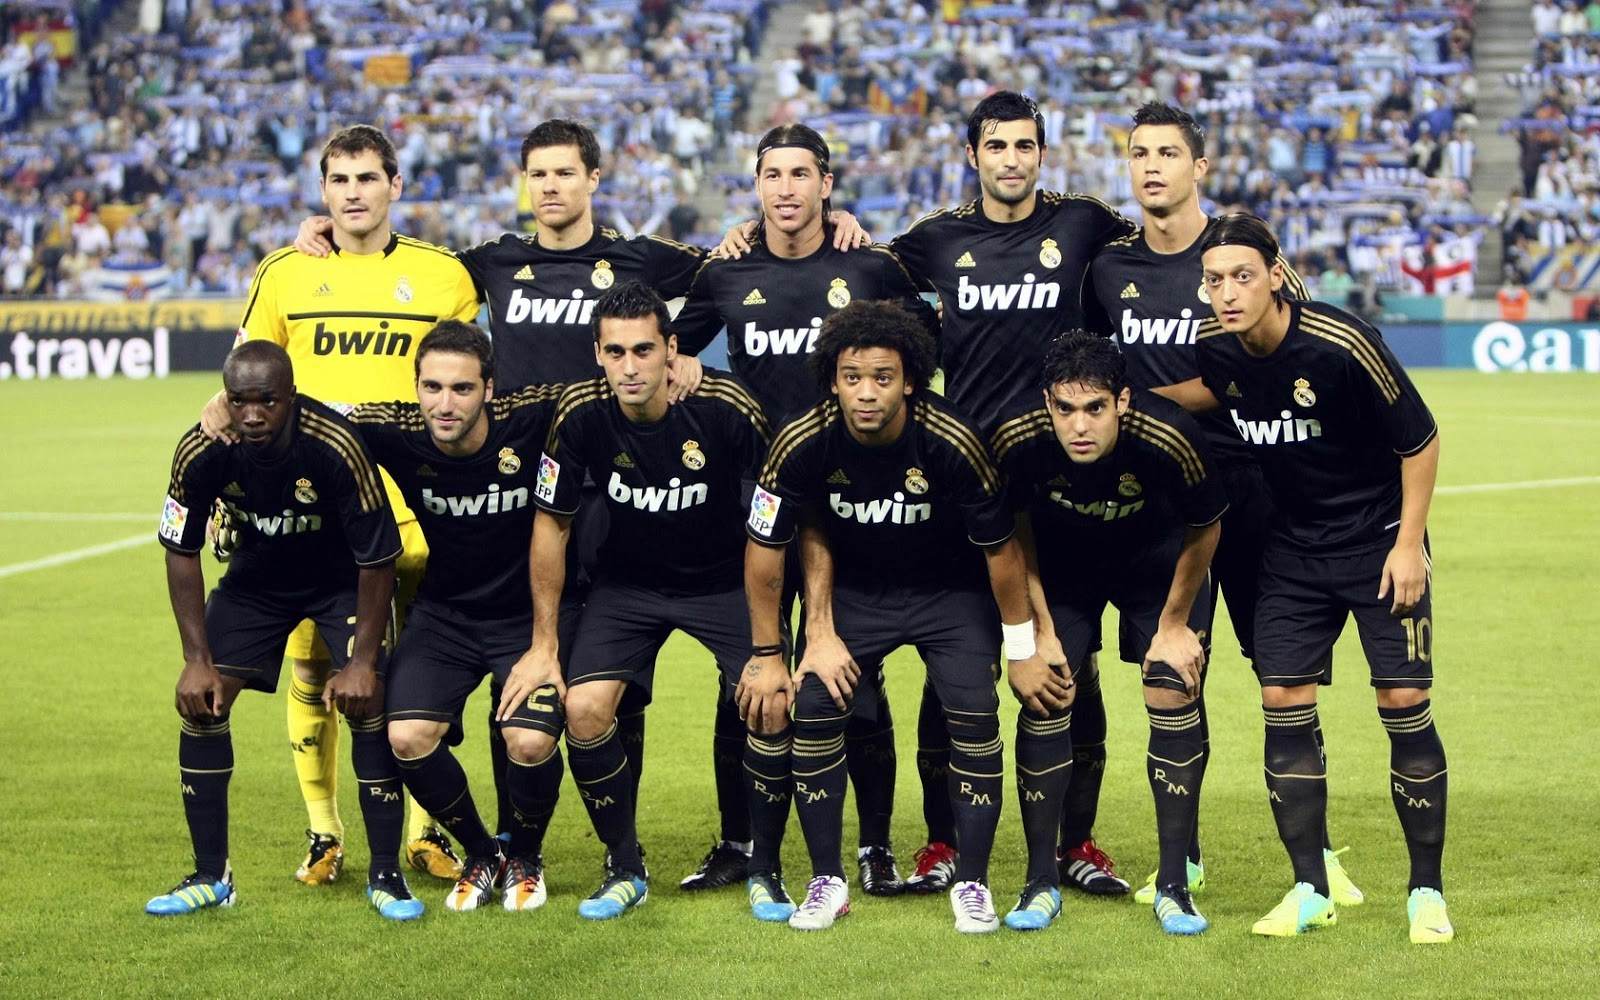 http://3.bp.blogspot.com/-nILcVBfKBU8/UNmbzyWCxyI/AAAAAAAAL2o/zLnpCN-ABfo/s1600/Real-Madrid-team-wallpapers-%2B02.jpg